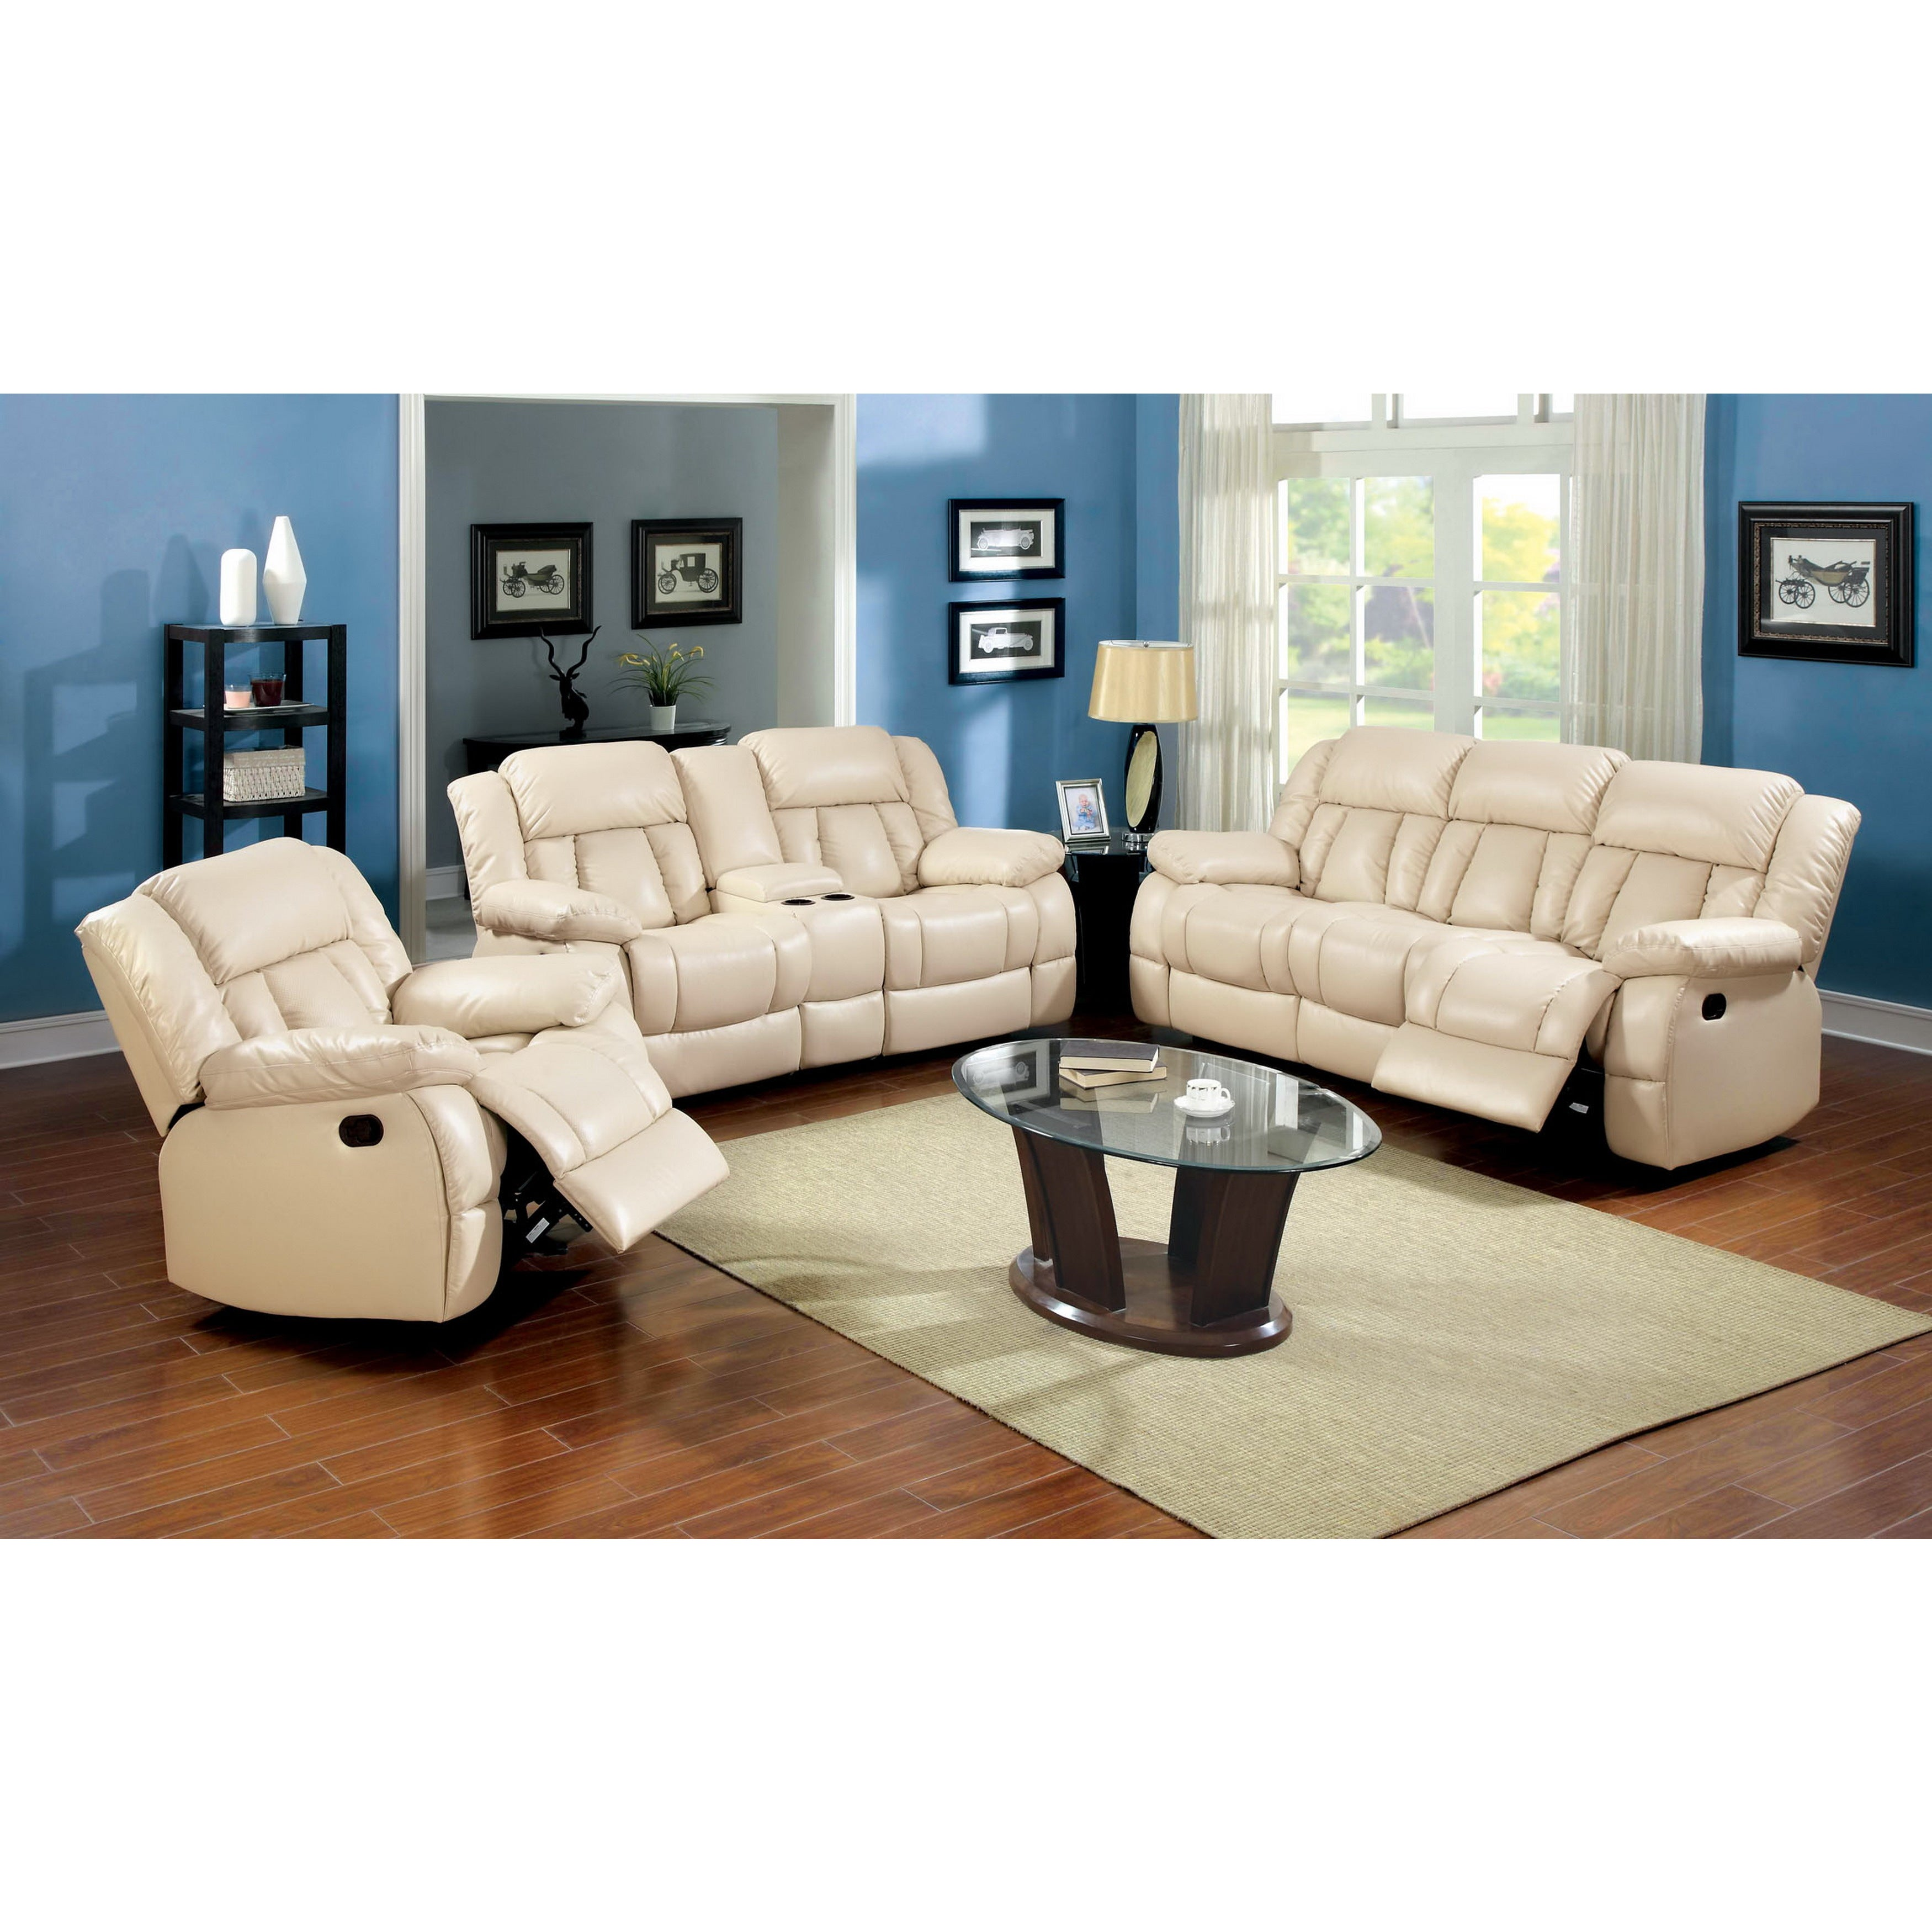 Miller 2 Piece Ivory Modern Bonded Leather Sectional Sofa Set